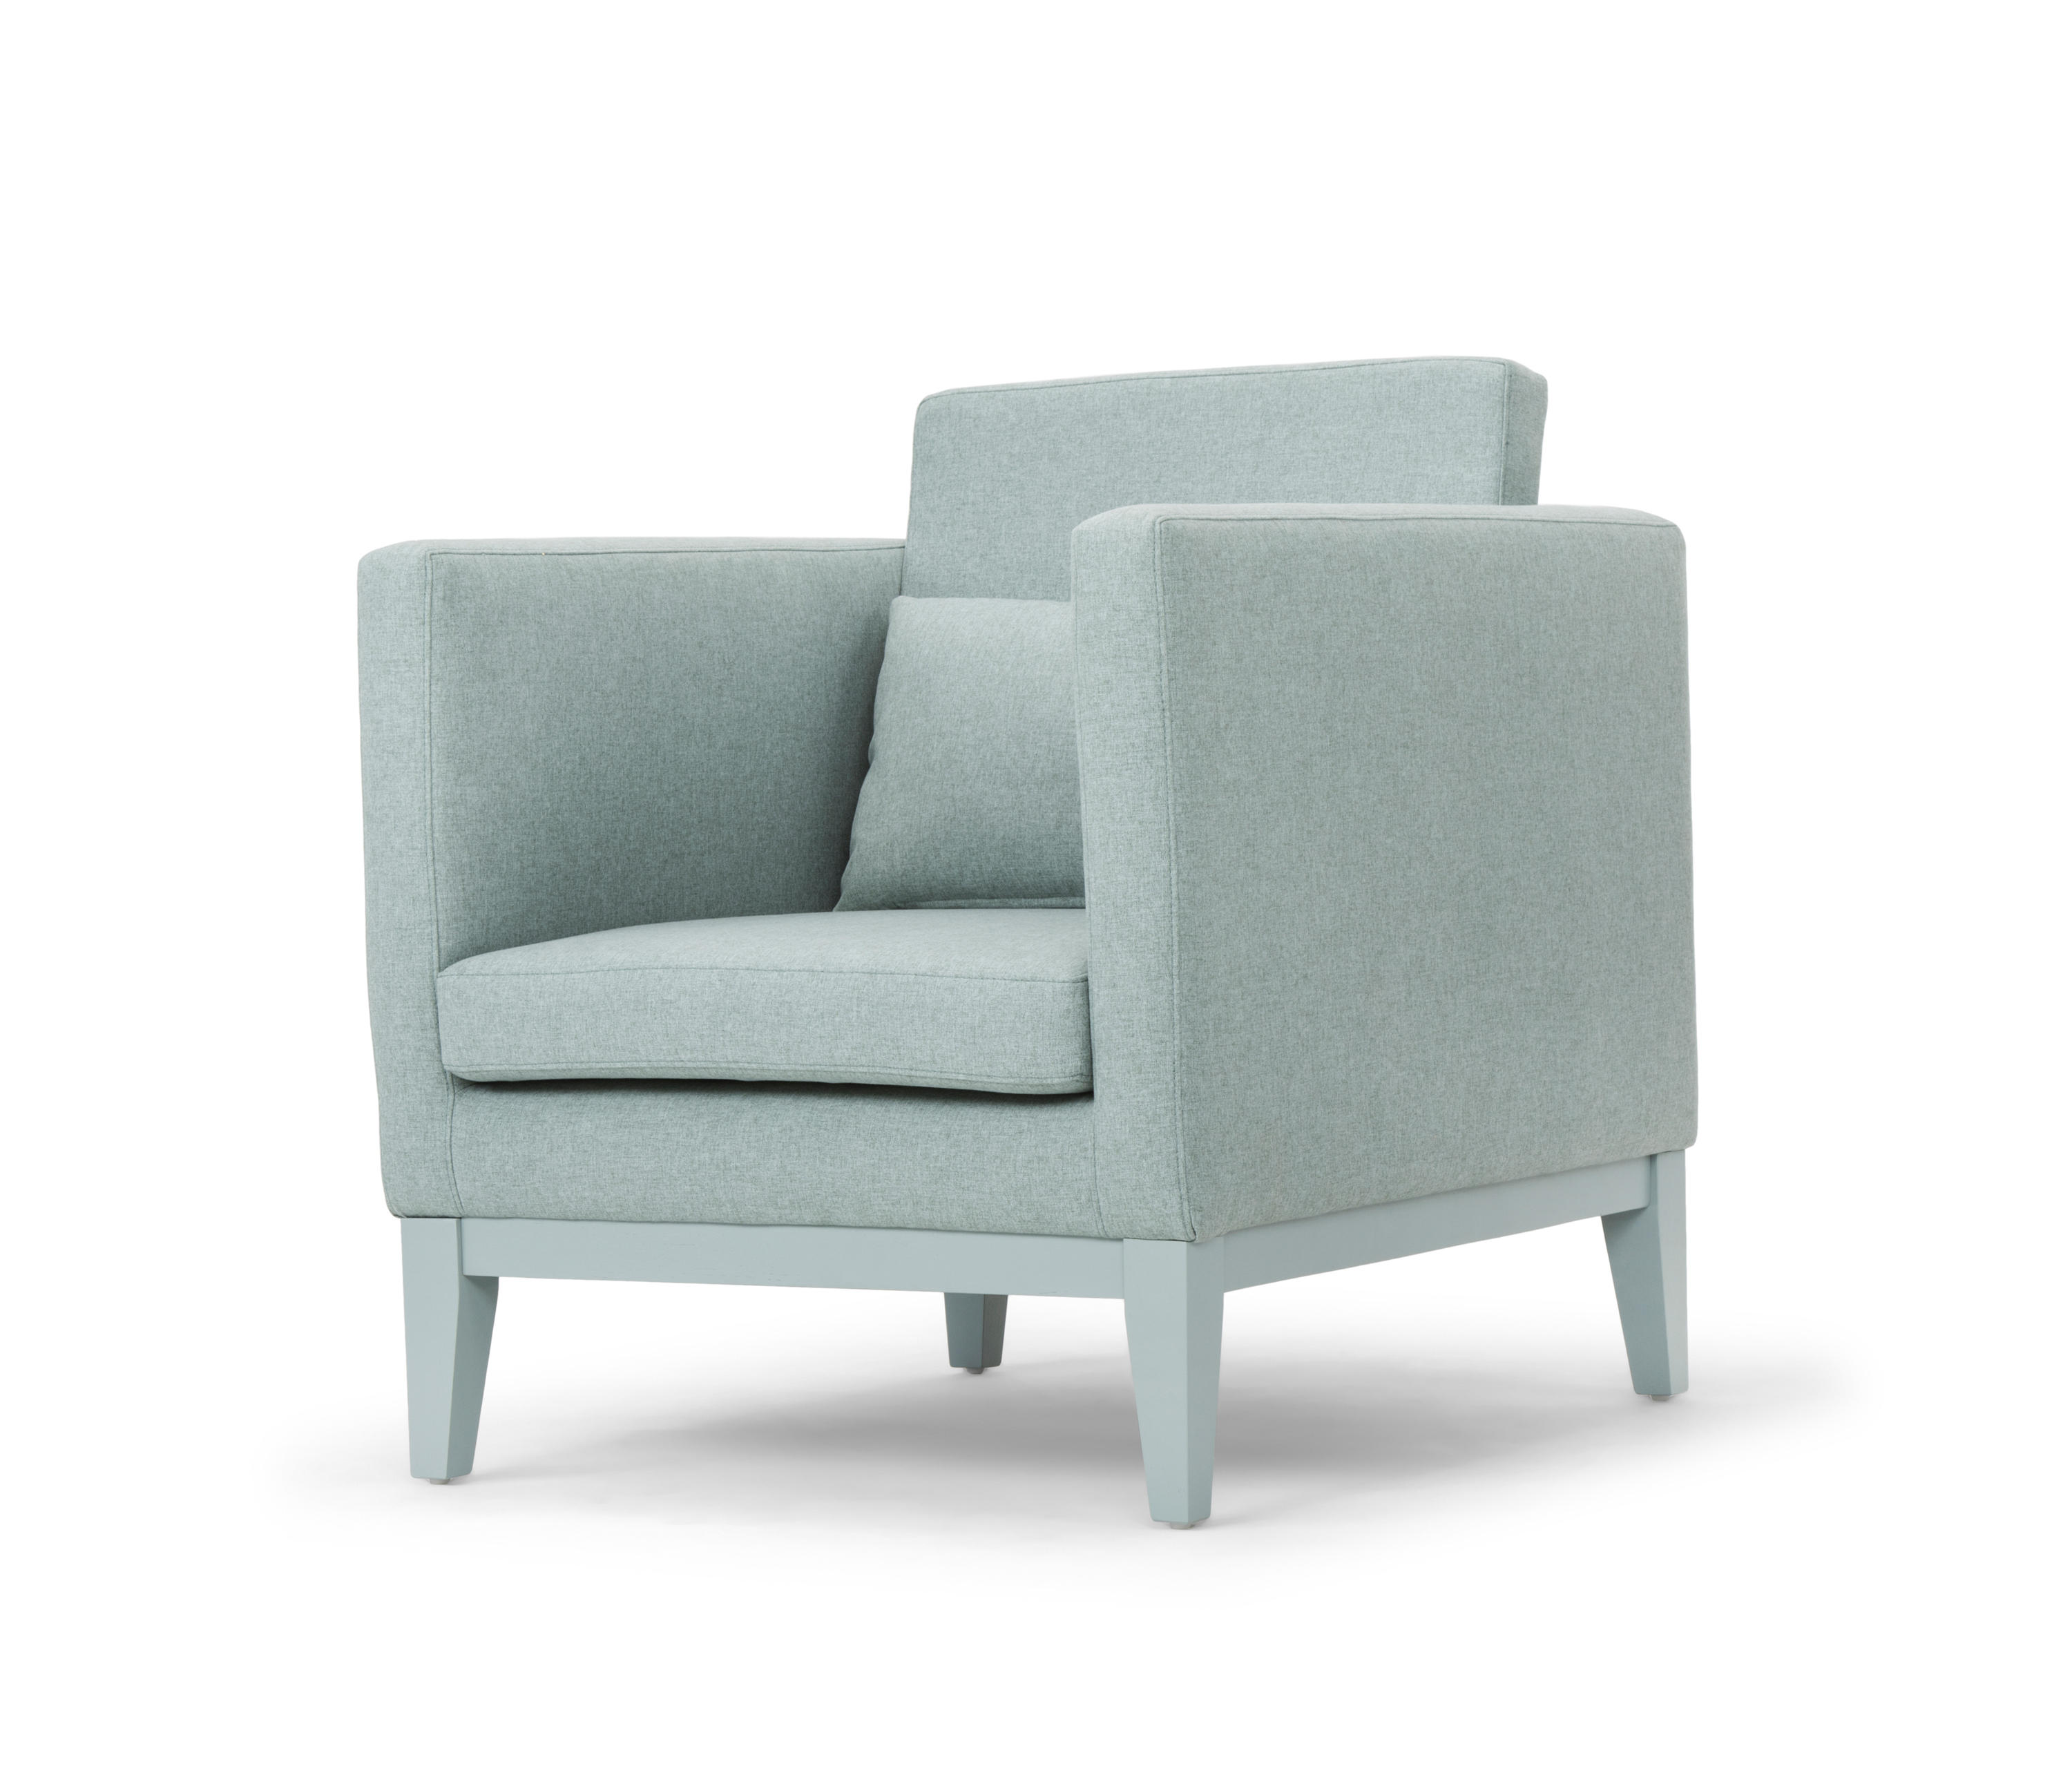 Day dream easy chair lounge chairs from design house for Dream house days furniture